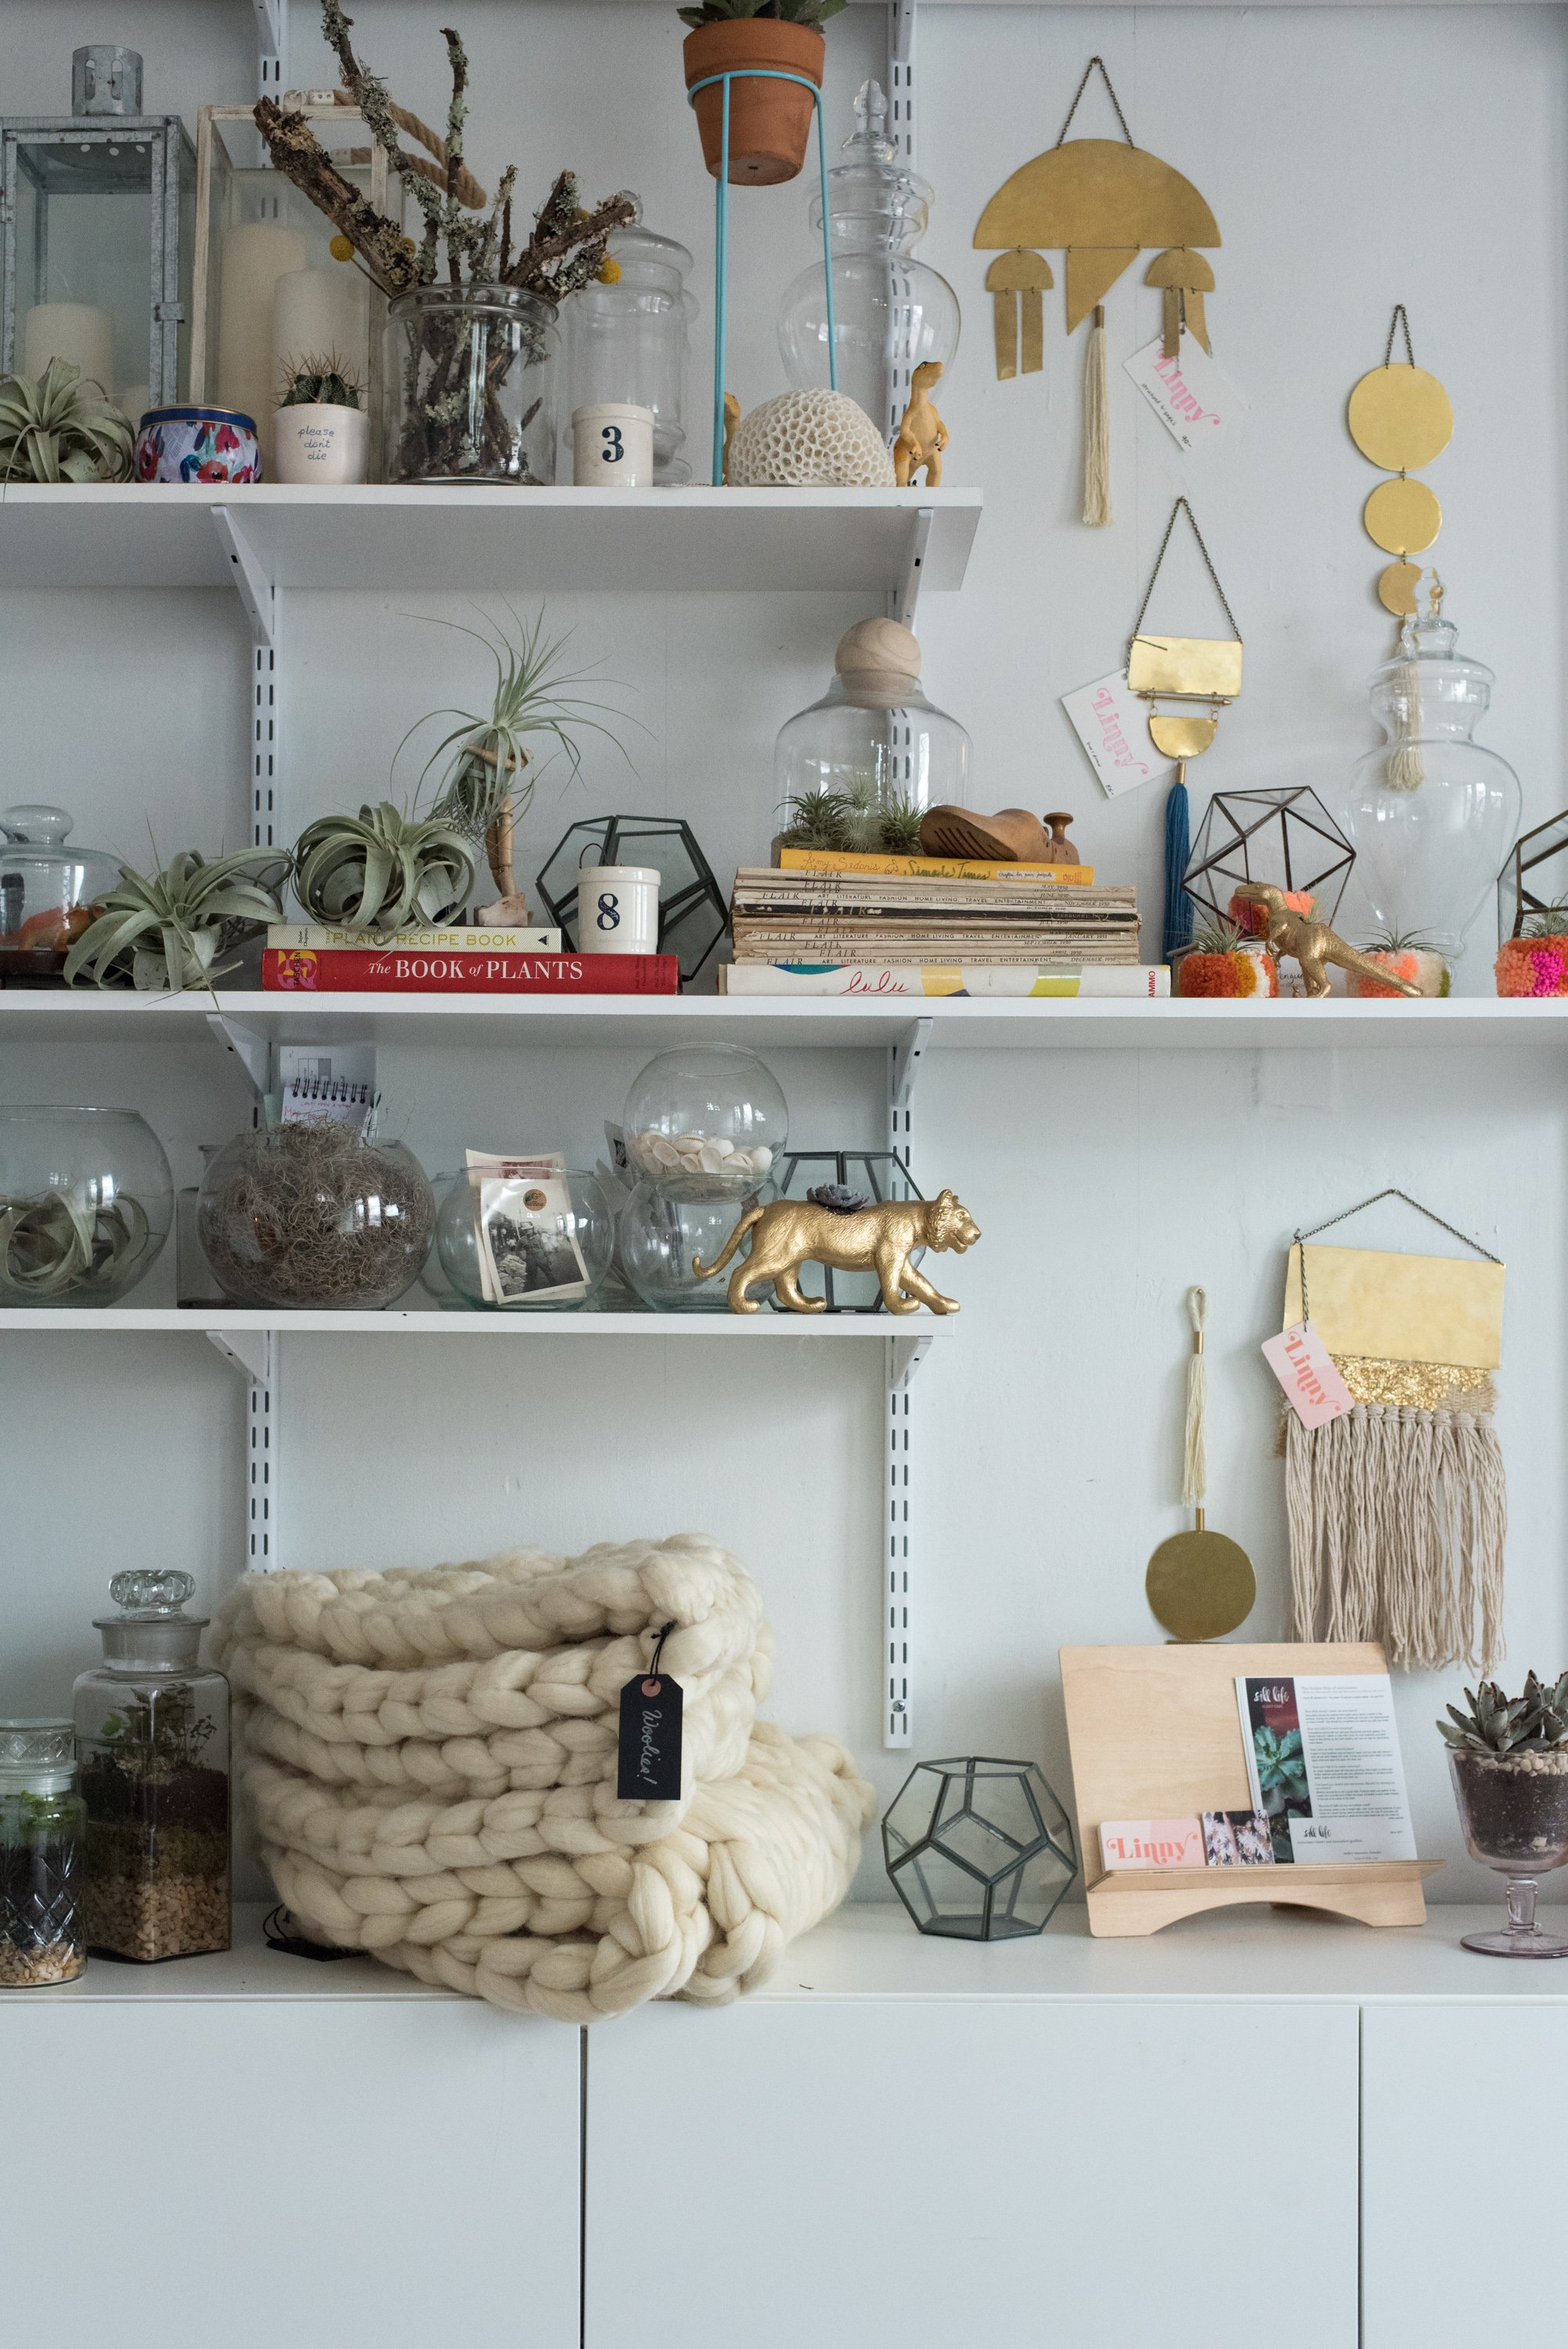 Cheerfully decorated shelves in The Lemon Bowl's sunny front room.